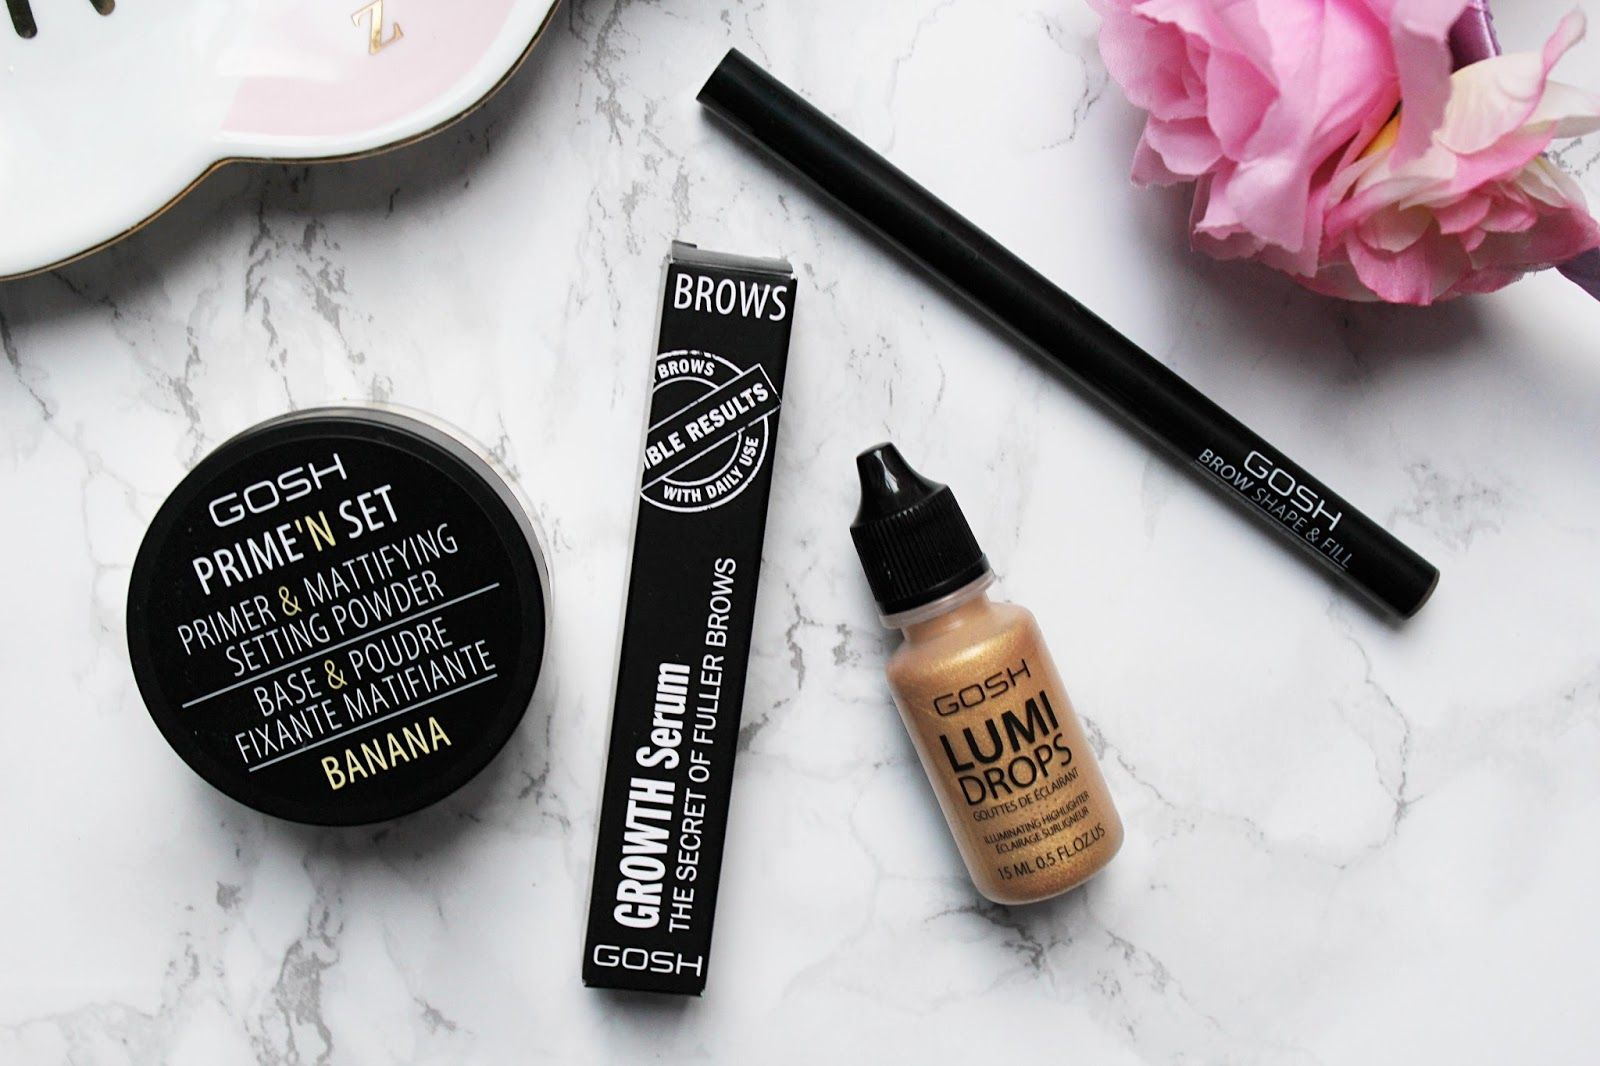 GOSH Makeup Must Haves Makeup must haves, Setting powder